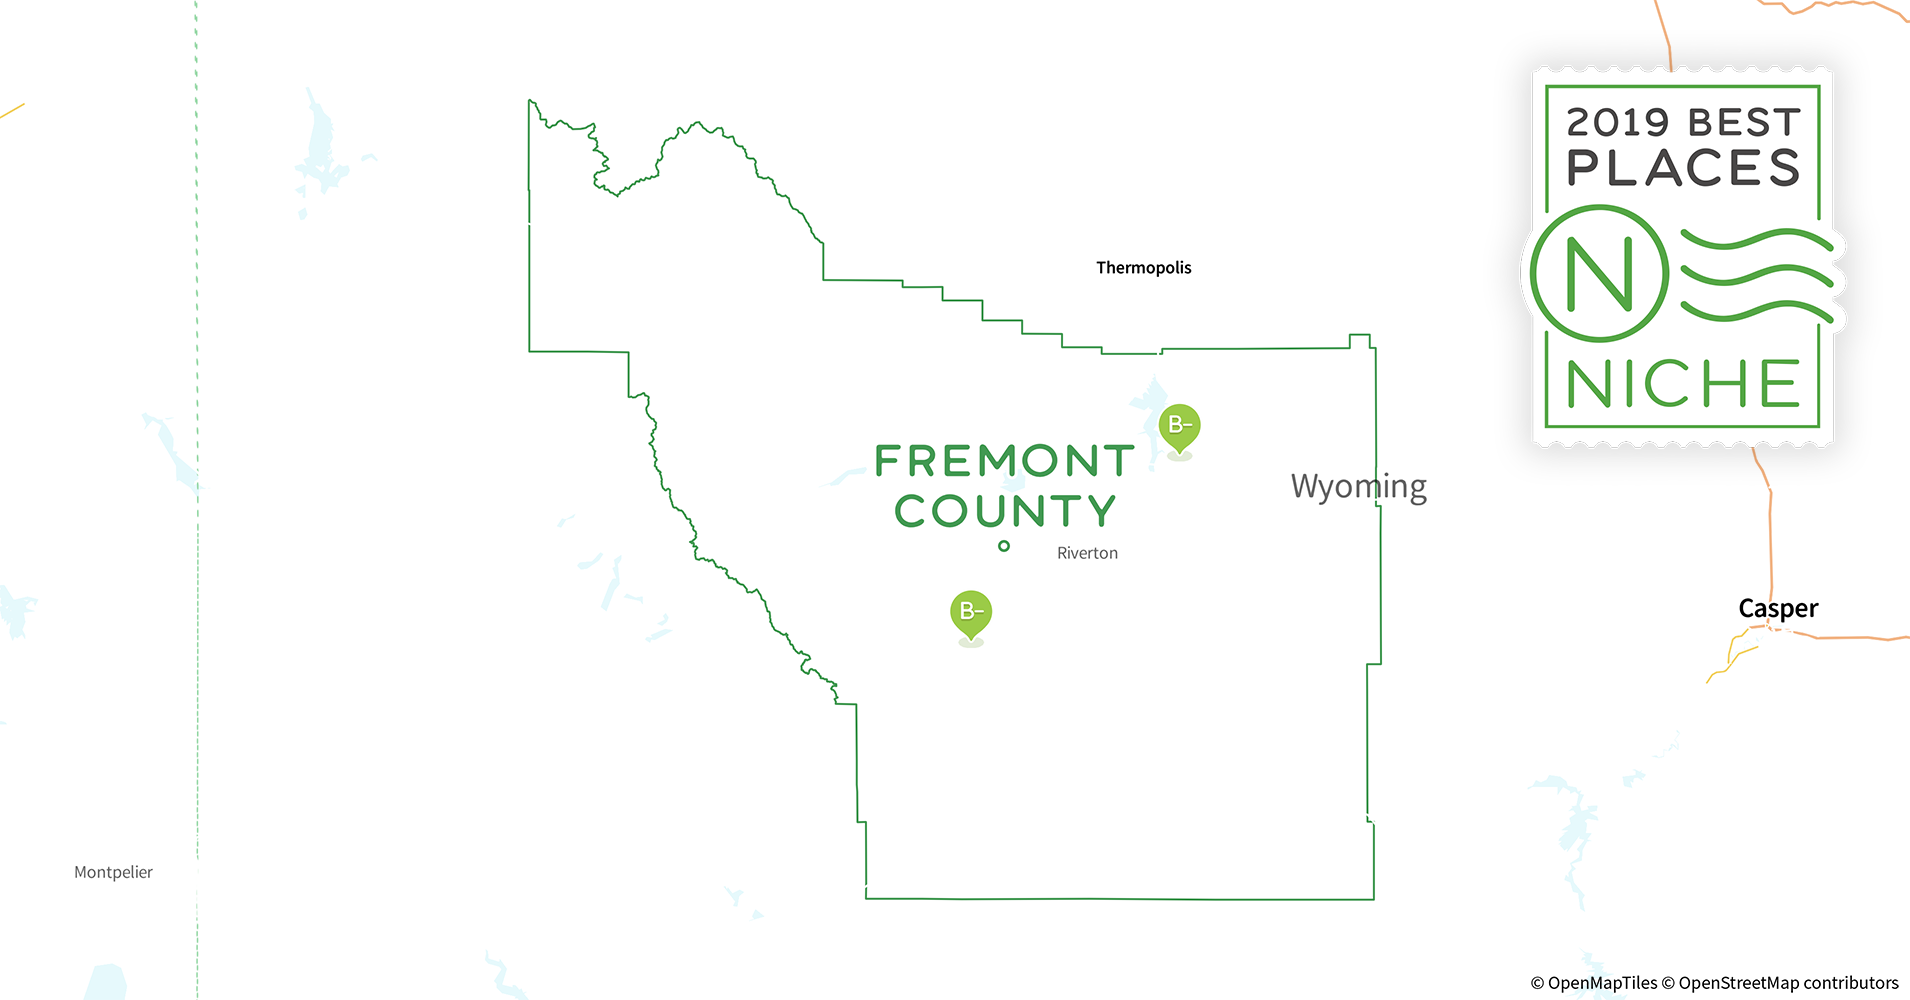 2019 Best Places To Live In Fremont County Wy Niche